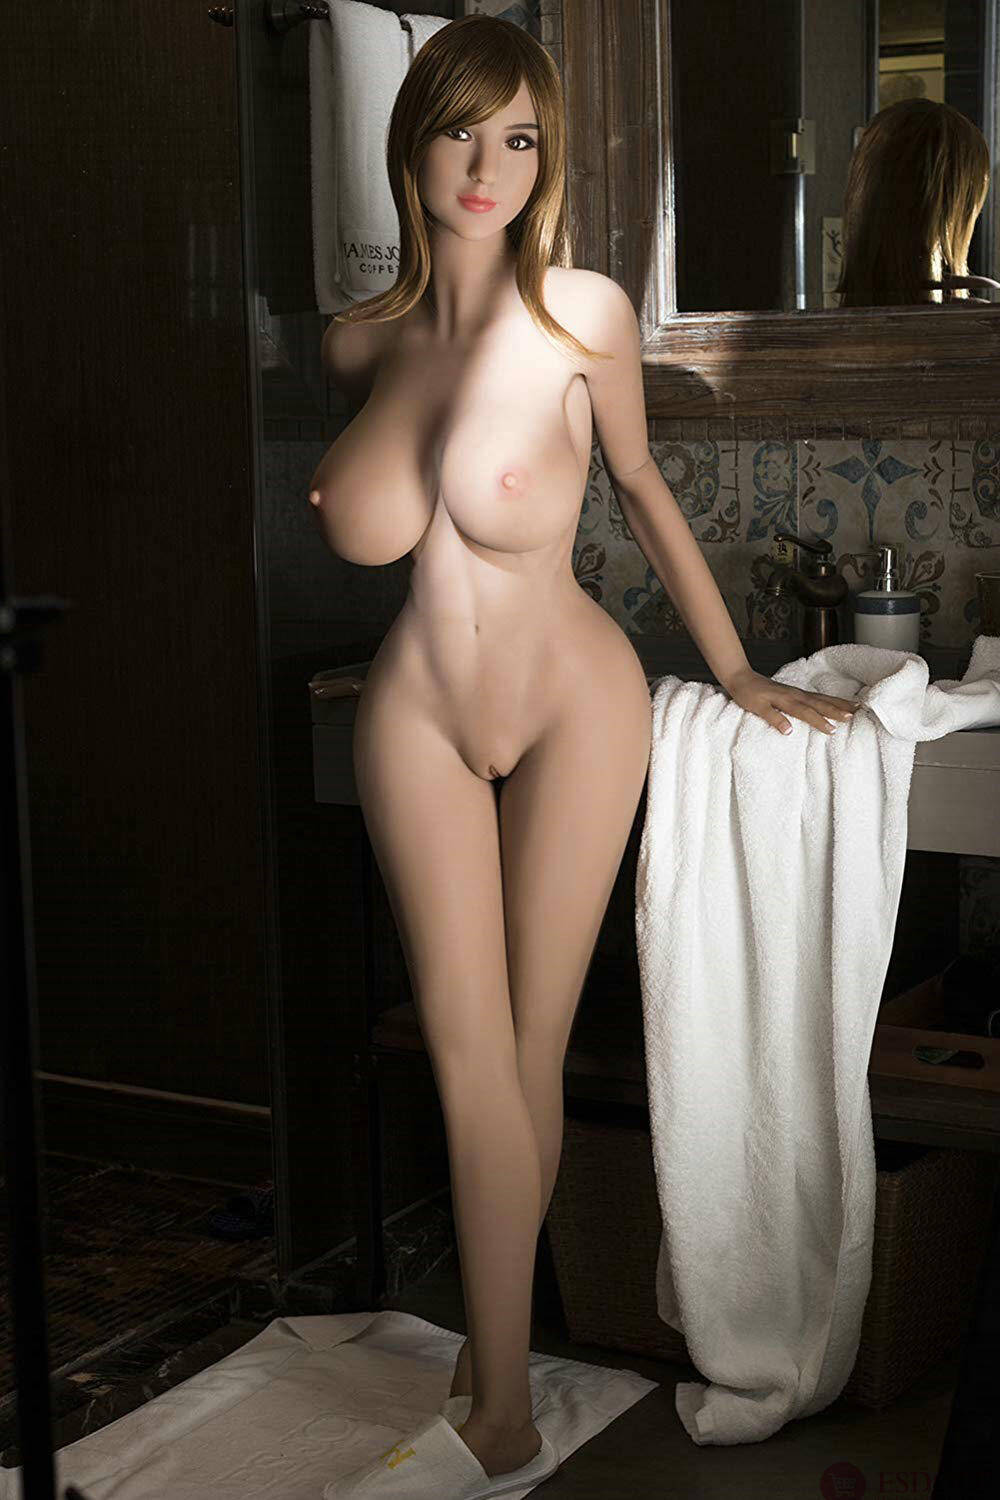 Big Booty Judy Sex Doll Real Size Love Doll 161cm-7